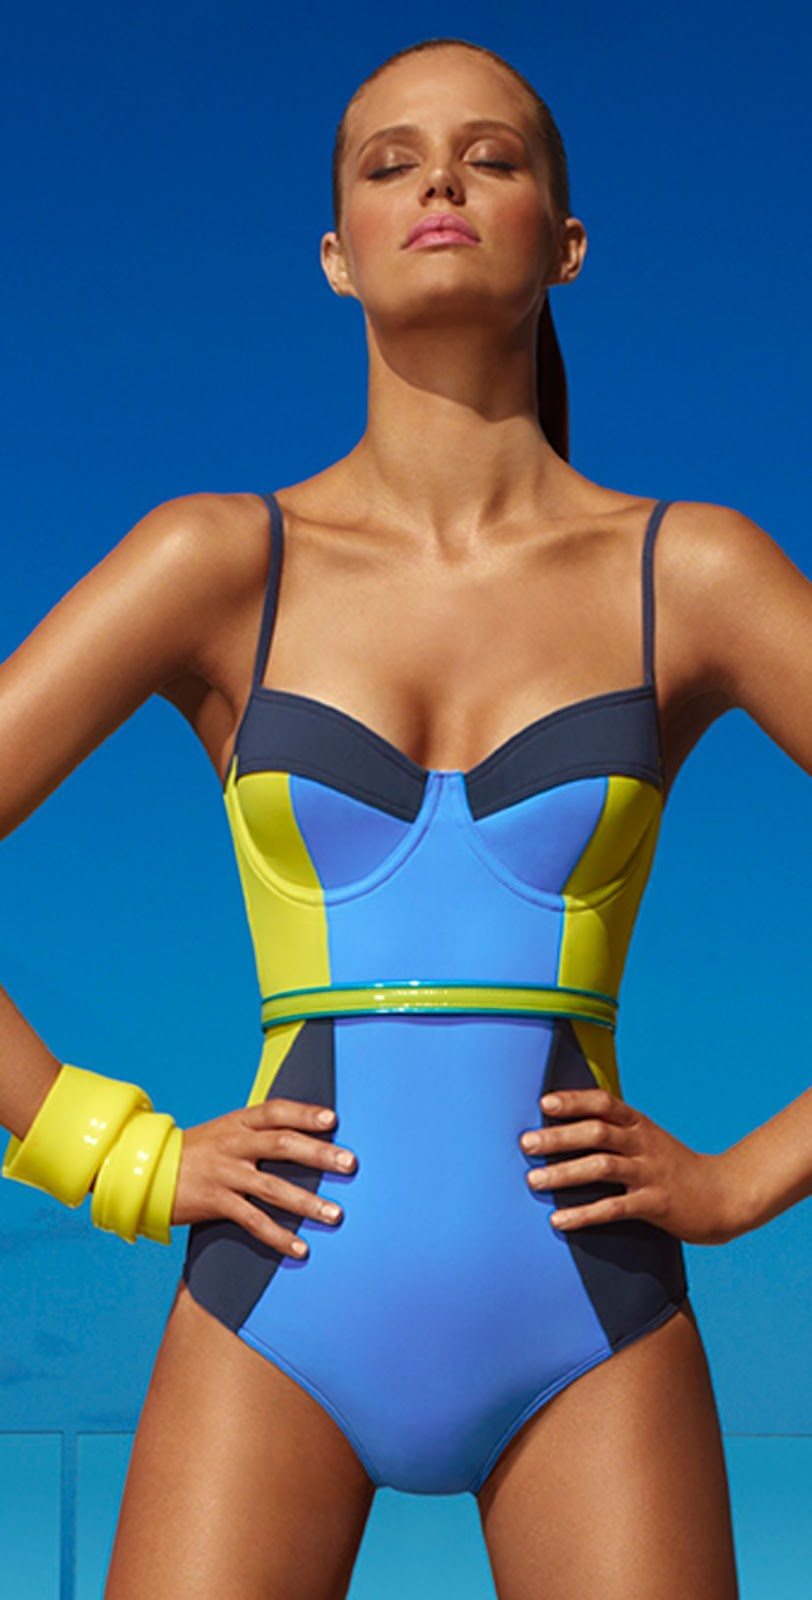 Swimsuit and Swimwear Trends: One – Piece Bathing Suits Are Back. Show off just the right amount of skin this season in a once piece style that's sure to turn heads.